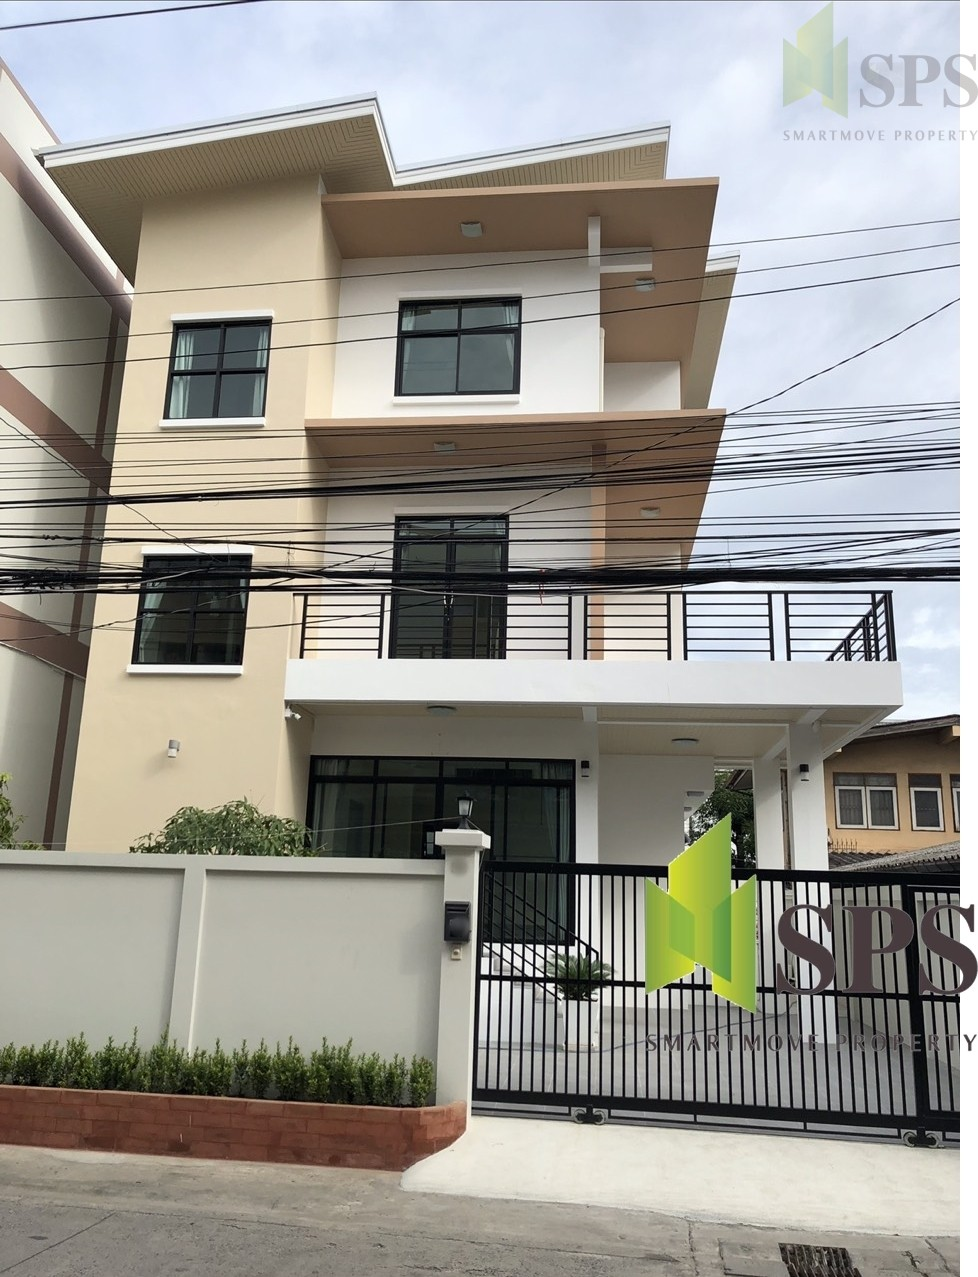 For Rent Single House New renovated 3 beds in Sukhumvit 64 (SPS-GH146)